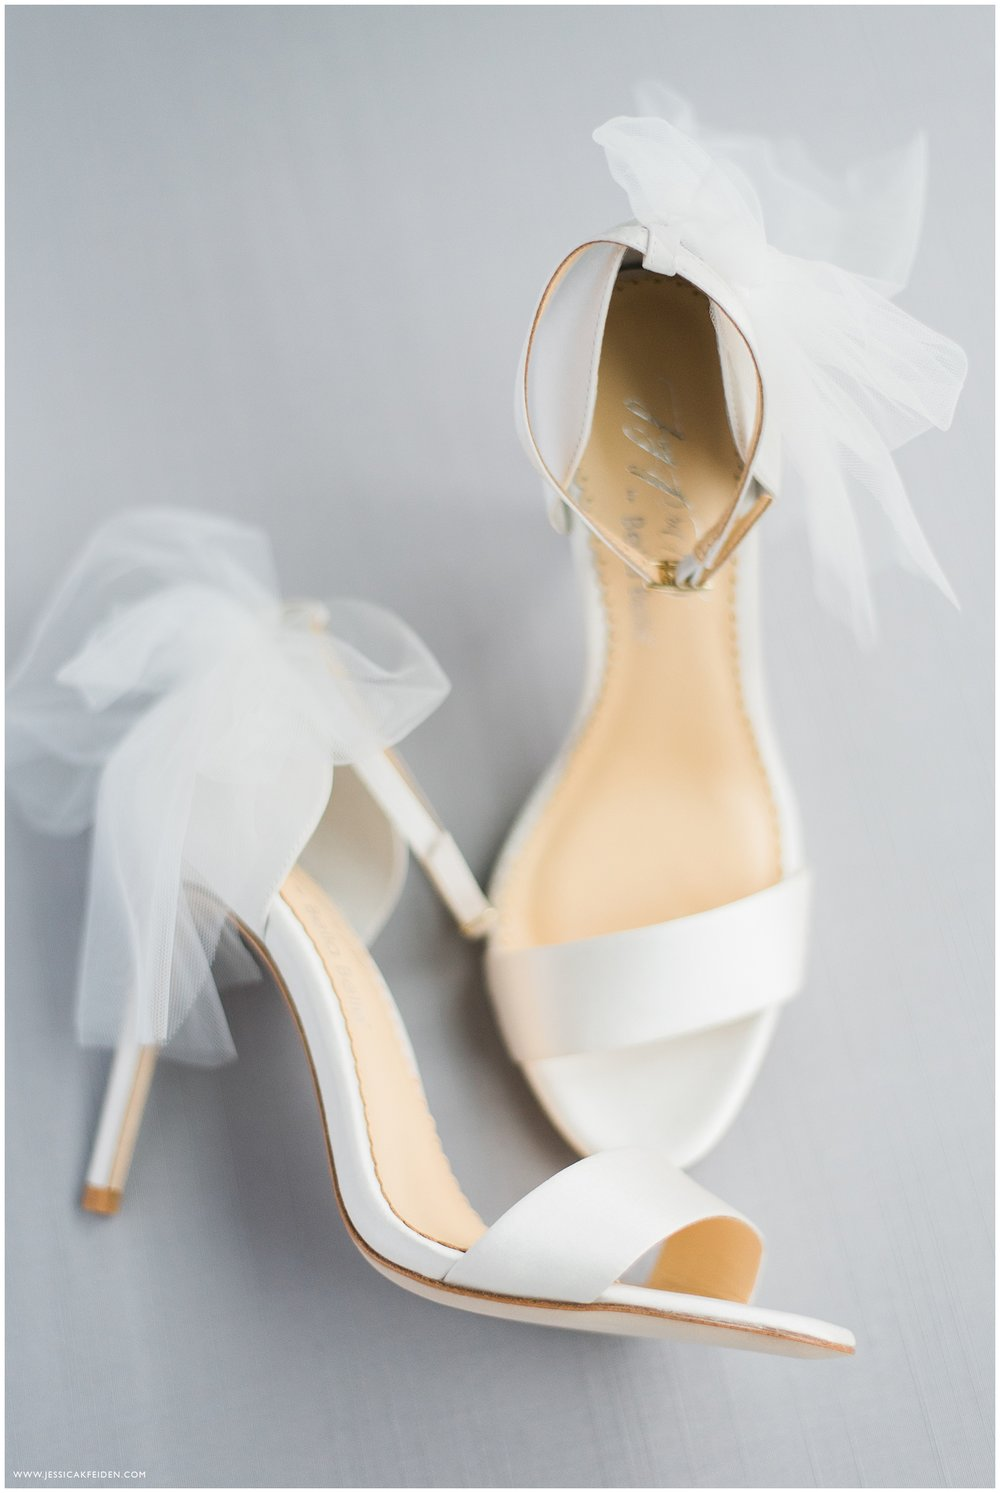 Jessica K Feiden Photography_Top 5 Things to Have Ready for Your Wedding Photographer_0010.jpg